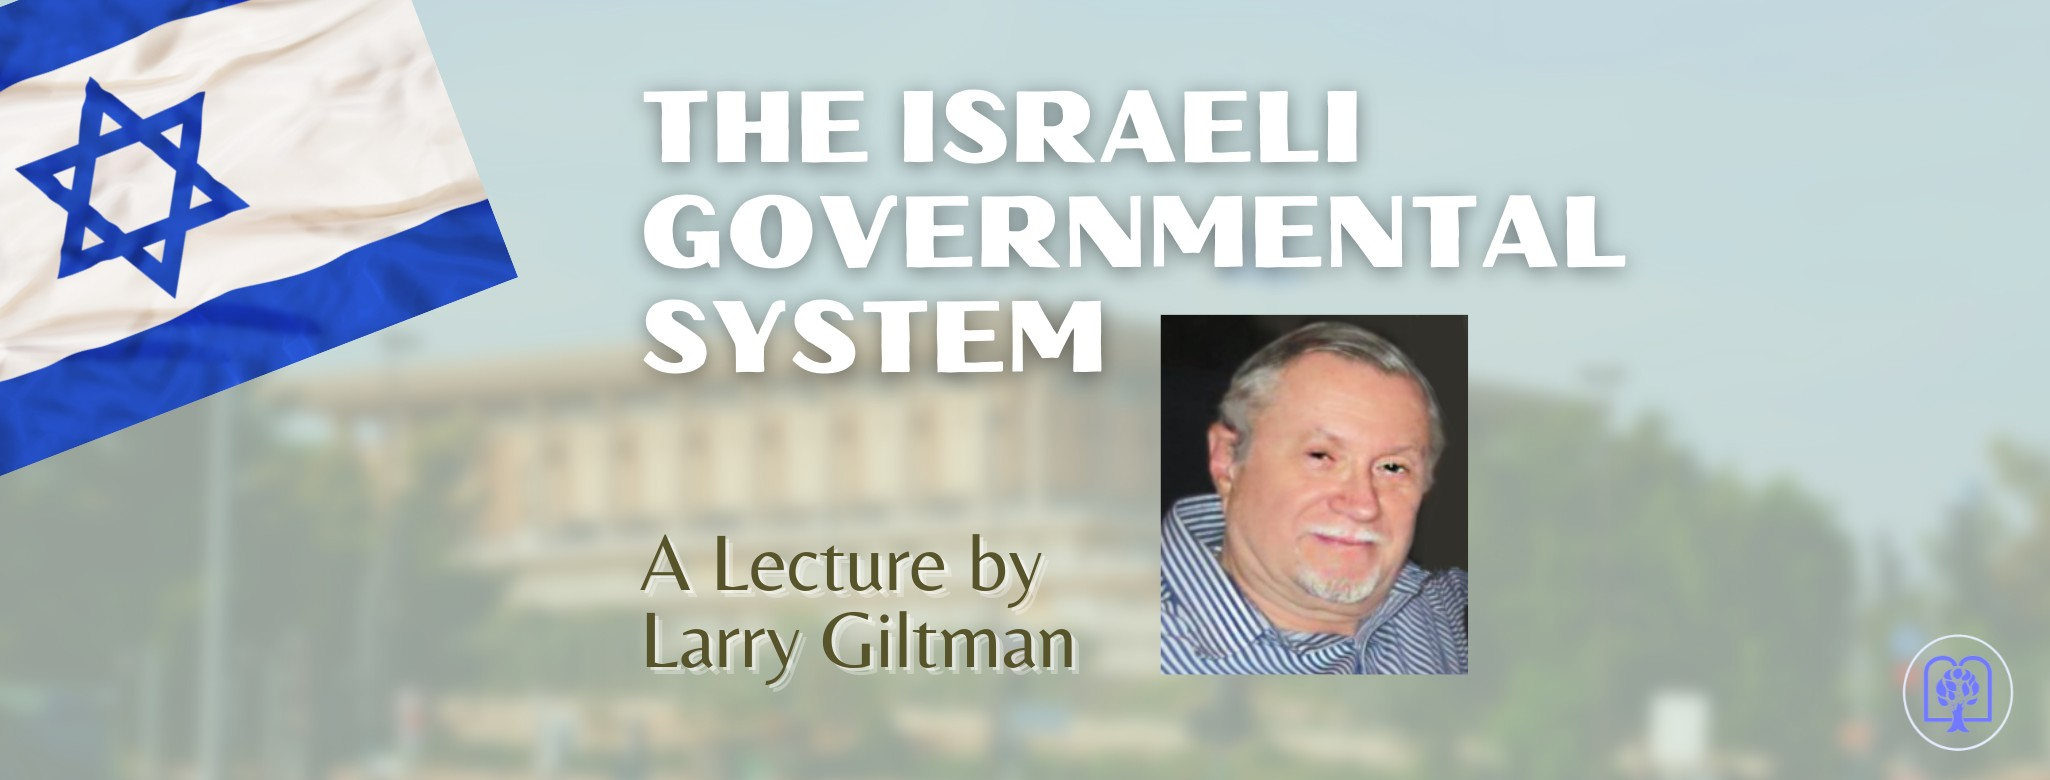 """<a href=""""https://www.templebethel.com/event/the-israeli-governmental-system.html""""                                     target="""""""">                                                                 <span class=""""slider_title"""">                                     July 28th                                </span>                                                                 </a>                                                                                                                                                                                      <a href=""""https://www.templebethel.com/event/the-israeli-governmental-system.html"""" class=""""slider_link""""                             target="""""""">                             More Information                            </a>"""